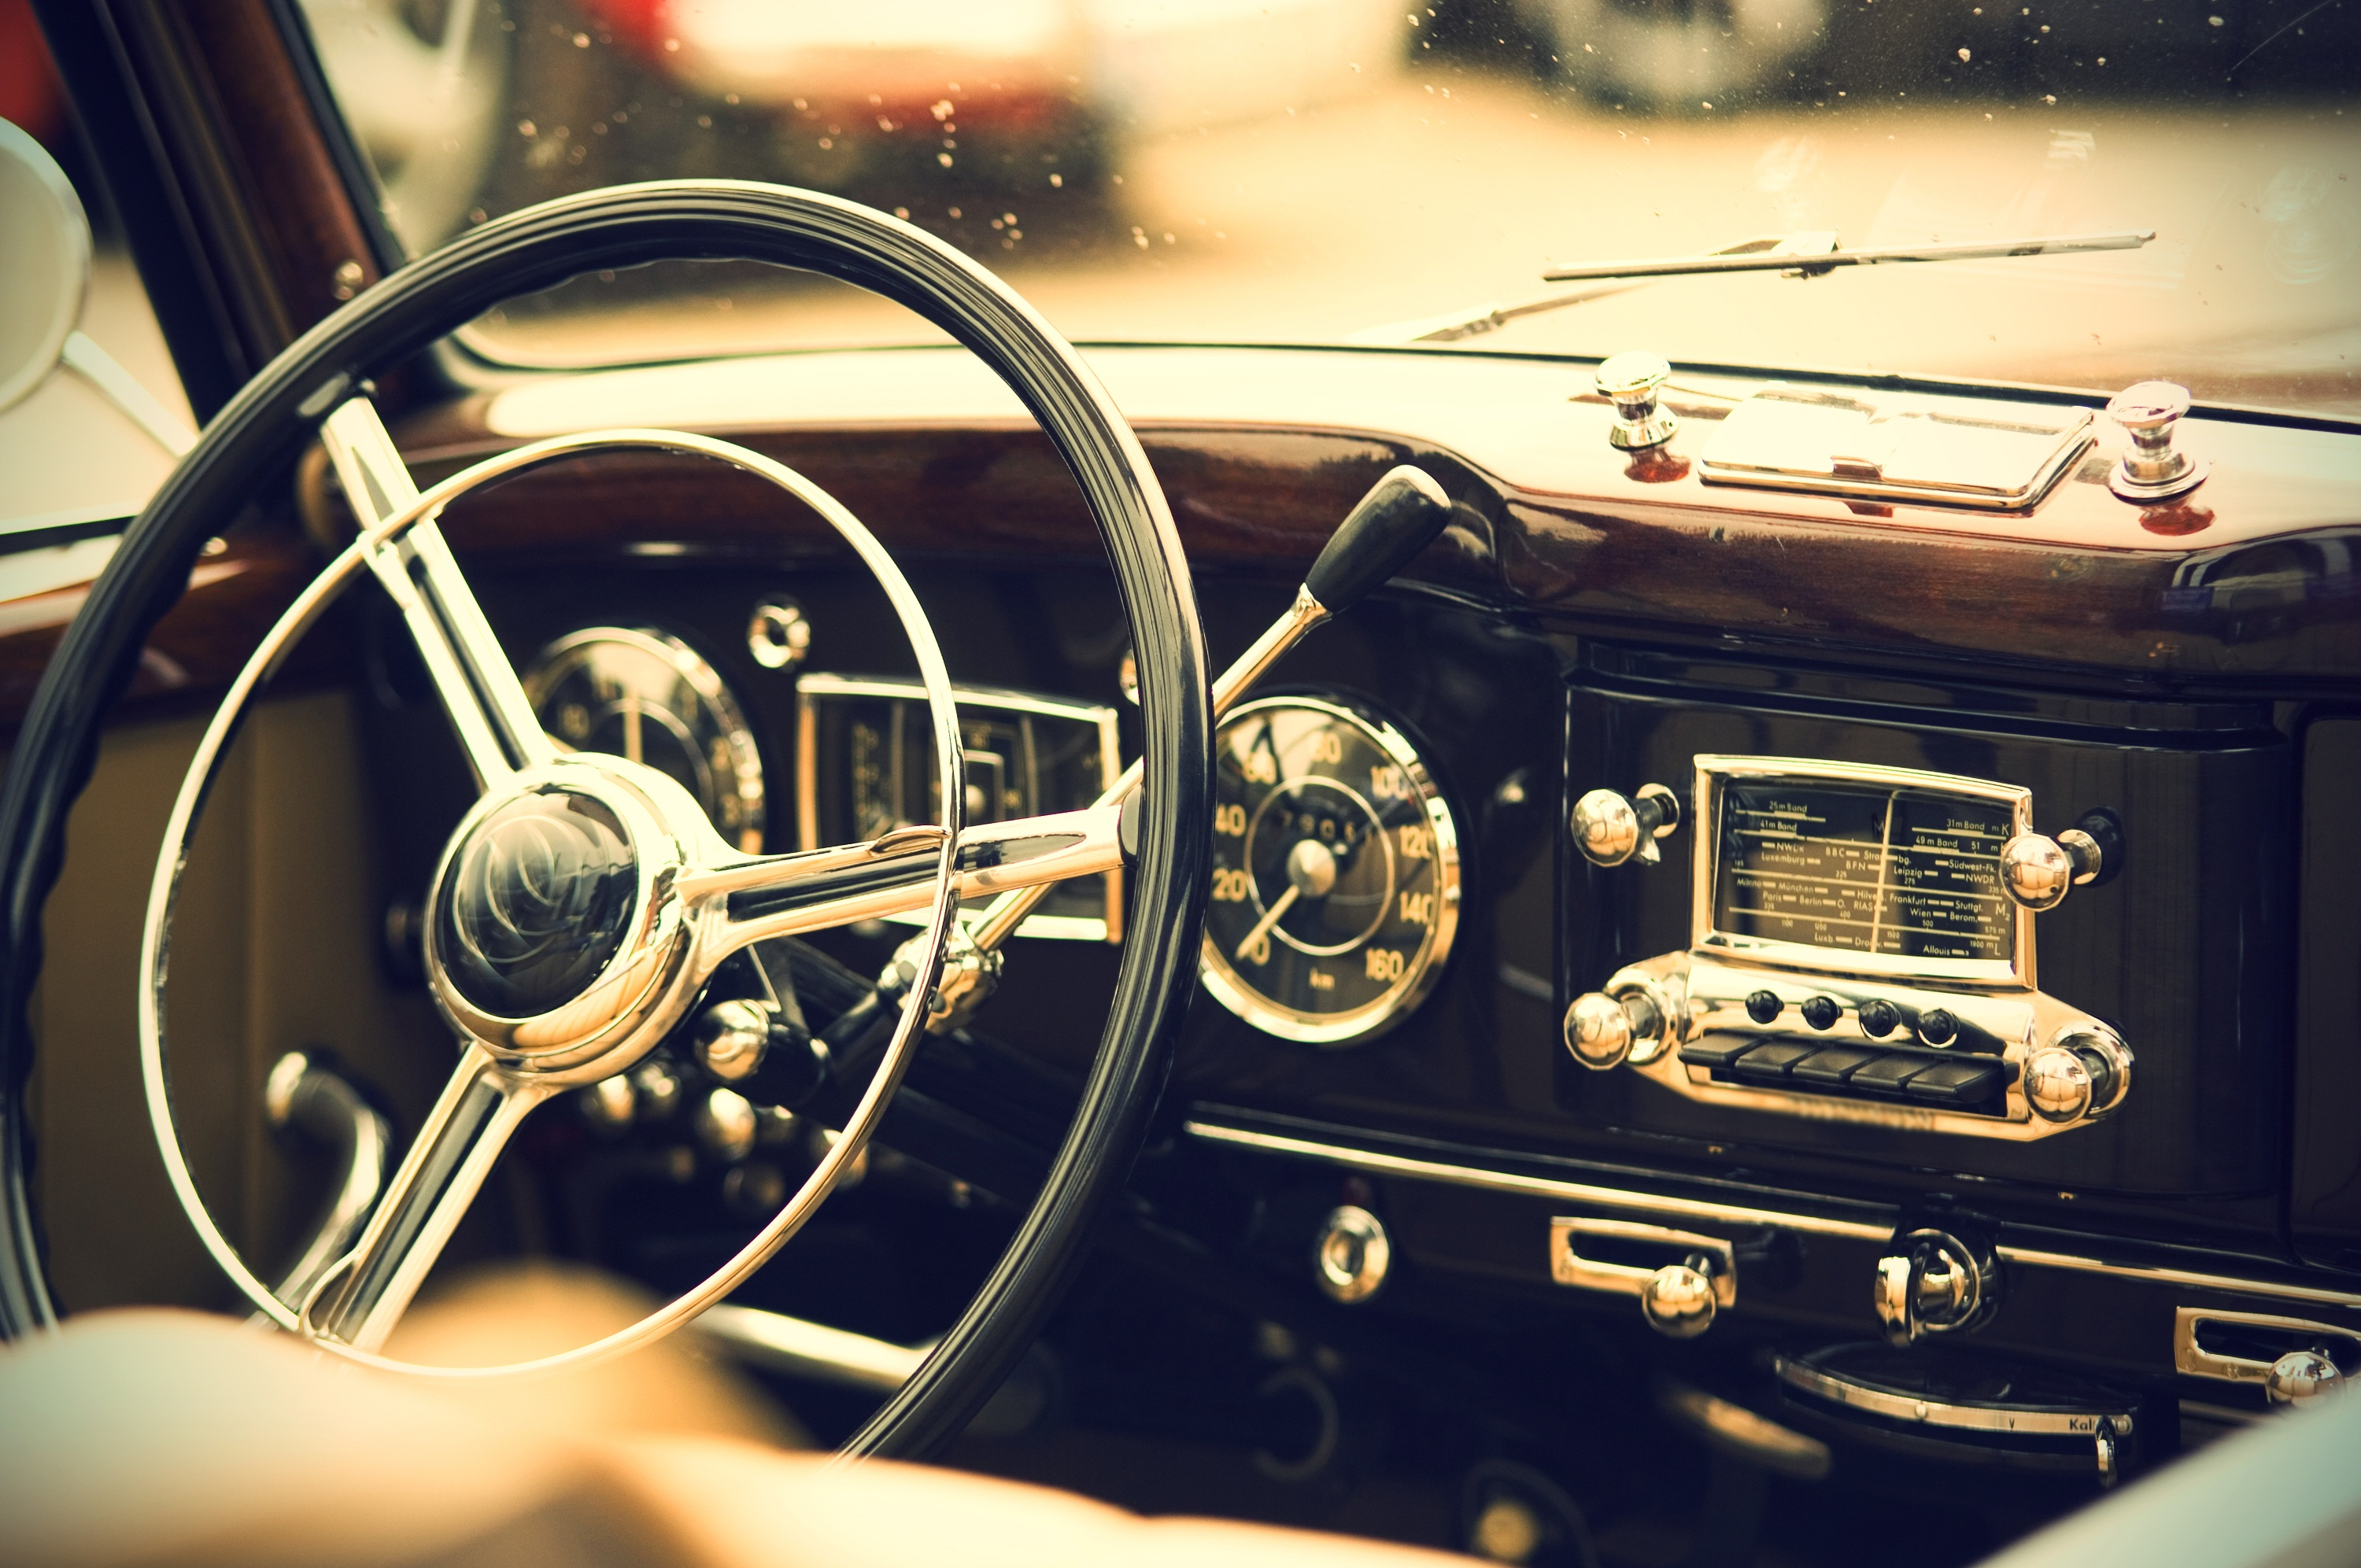 Free stock photos of classic car · Pexels